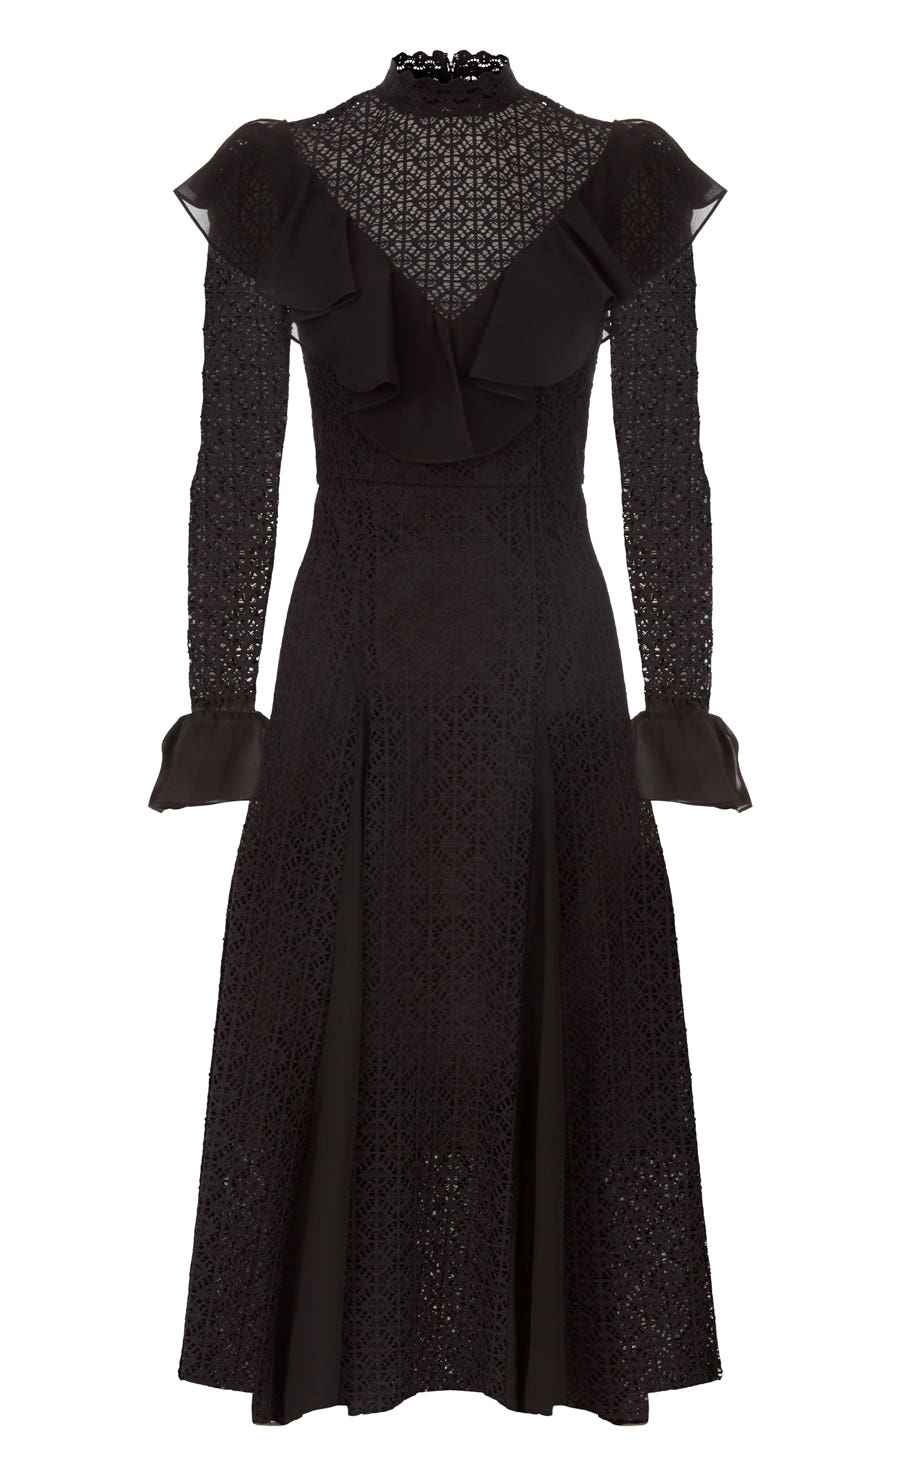 Prairie Lace Ruffle Dress, Black